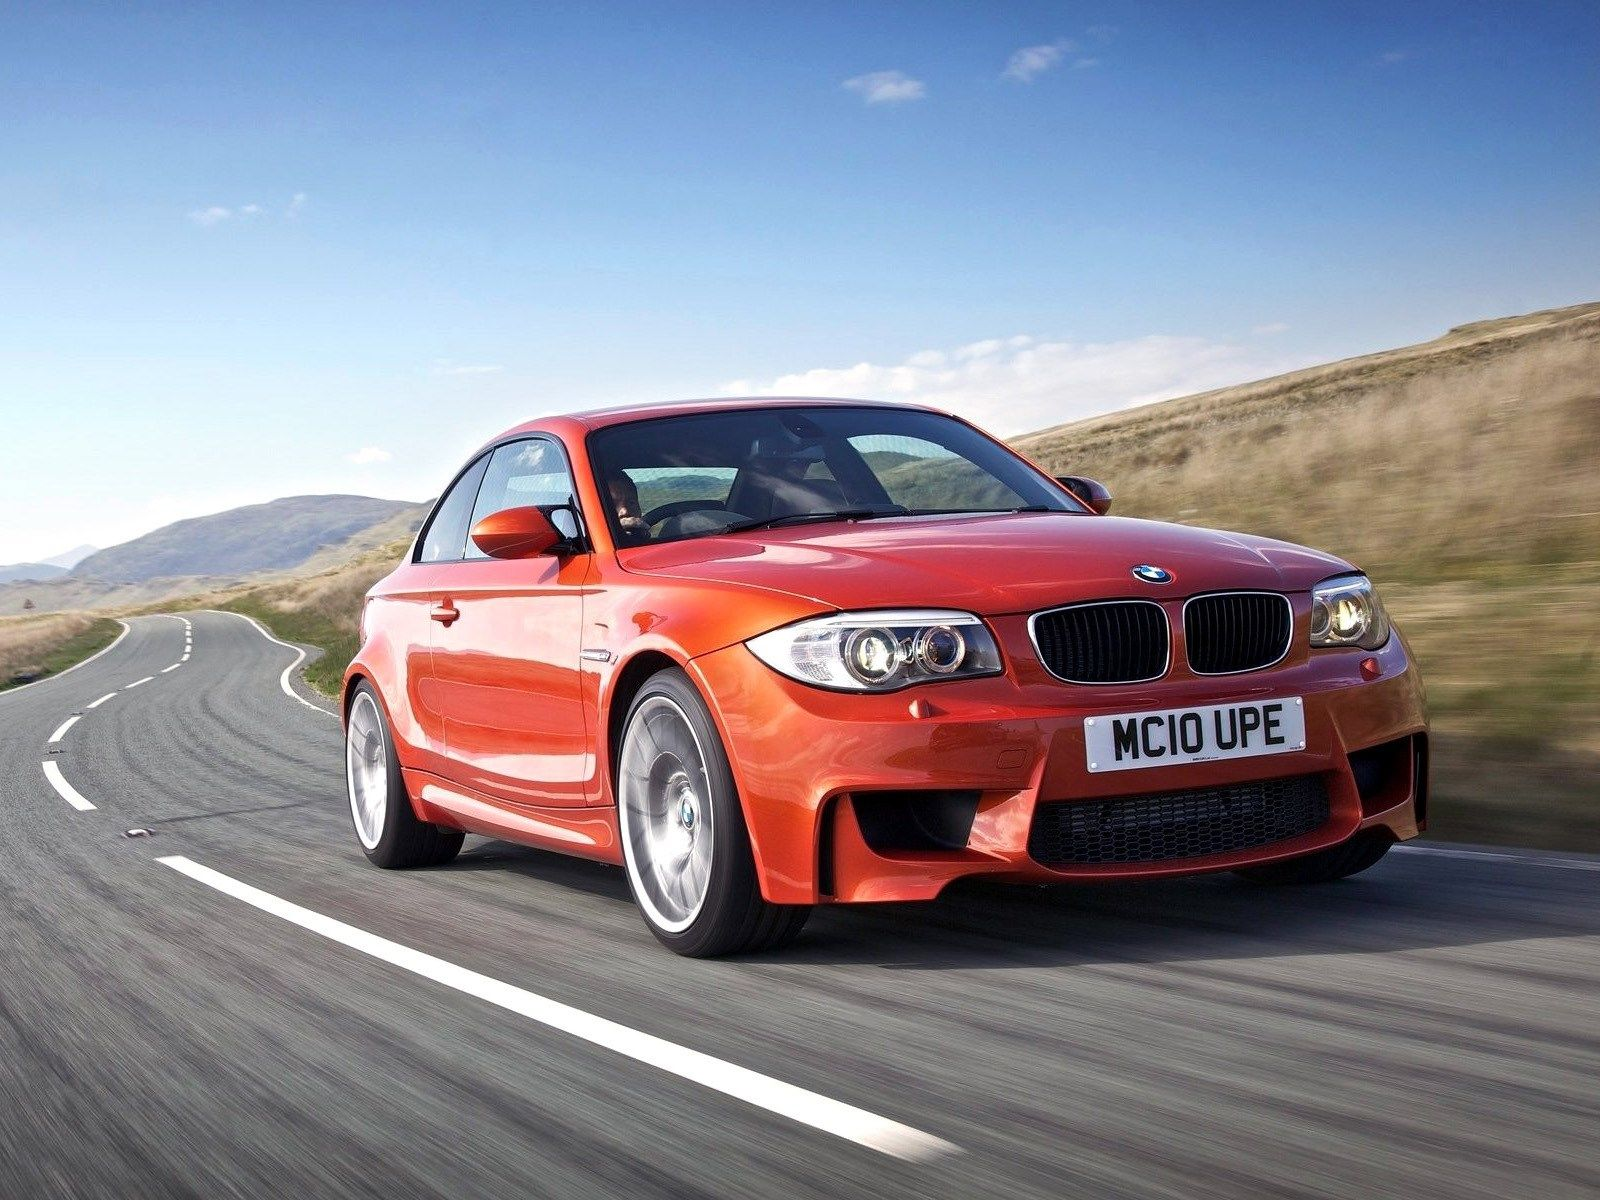 Bmw 1 Series M Coupe Wallpaper Collection Bmw 1 Series Bmw